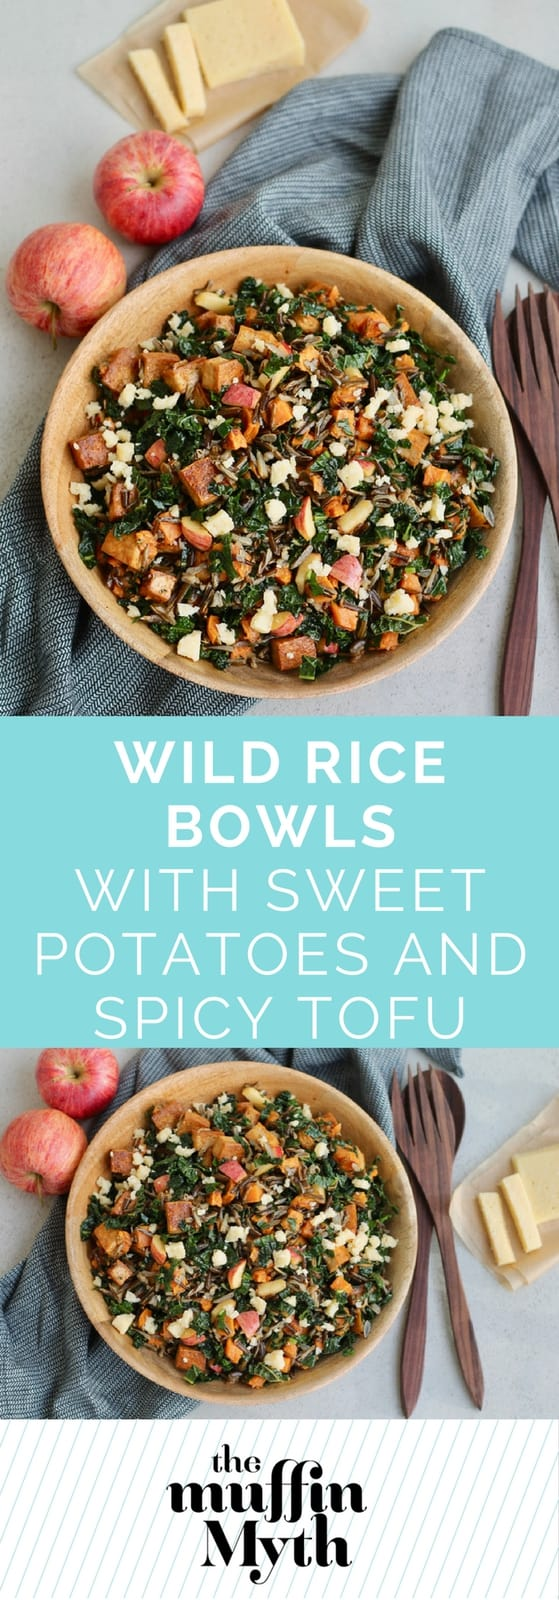 Flavour packed wild rice bowls with roasted sweet potatoes, spicy marinated tofu, lacinato kale, crisp apple, and crumbles of sharp cheese. A great make-ahead meal or holiday side dish. #vegetarian #wildrice #glutenfree